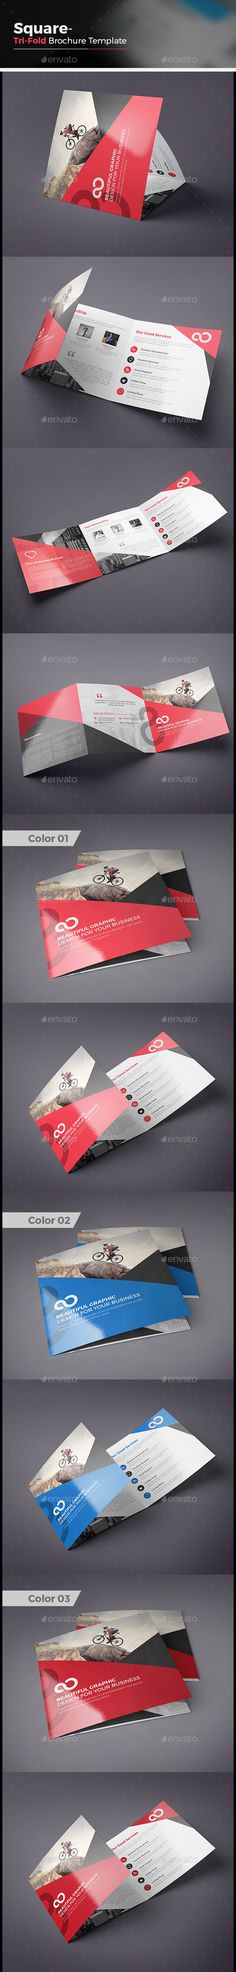 Square Tri fold Business Brochure Template Vector EPS, AI Illustrator #design Download: http://graphicriver.net/item/square-tri-fold-business-brochure/14071811?ref=ksioks